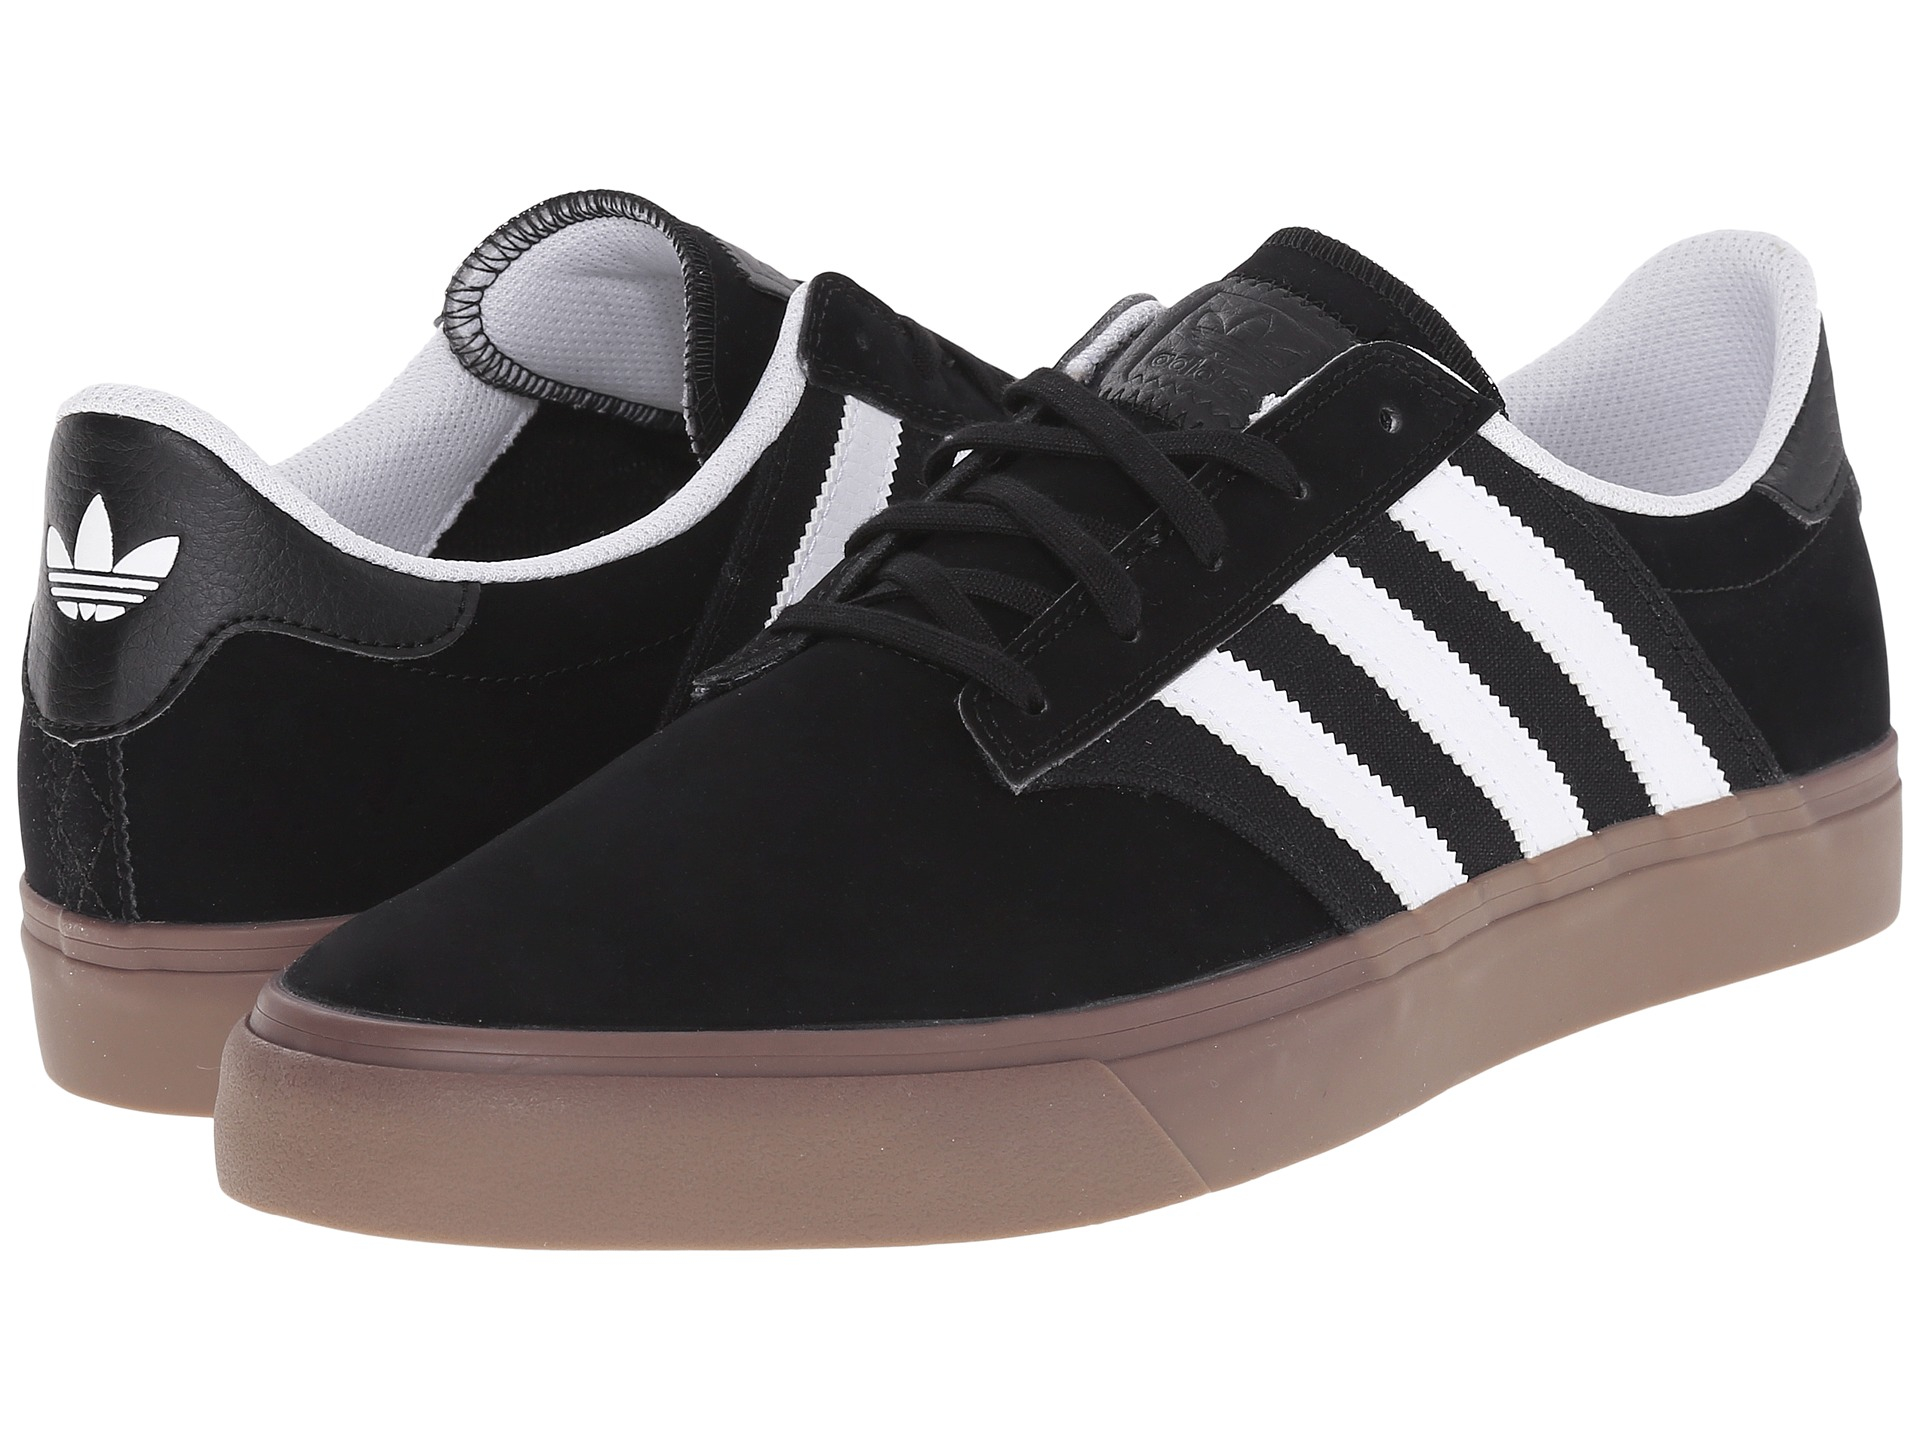 Adidas Seeley All Black Canvas Skate Shoe